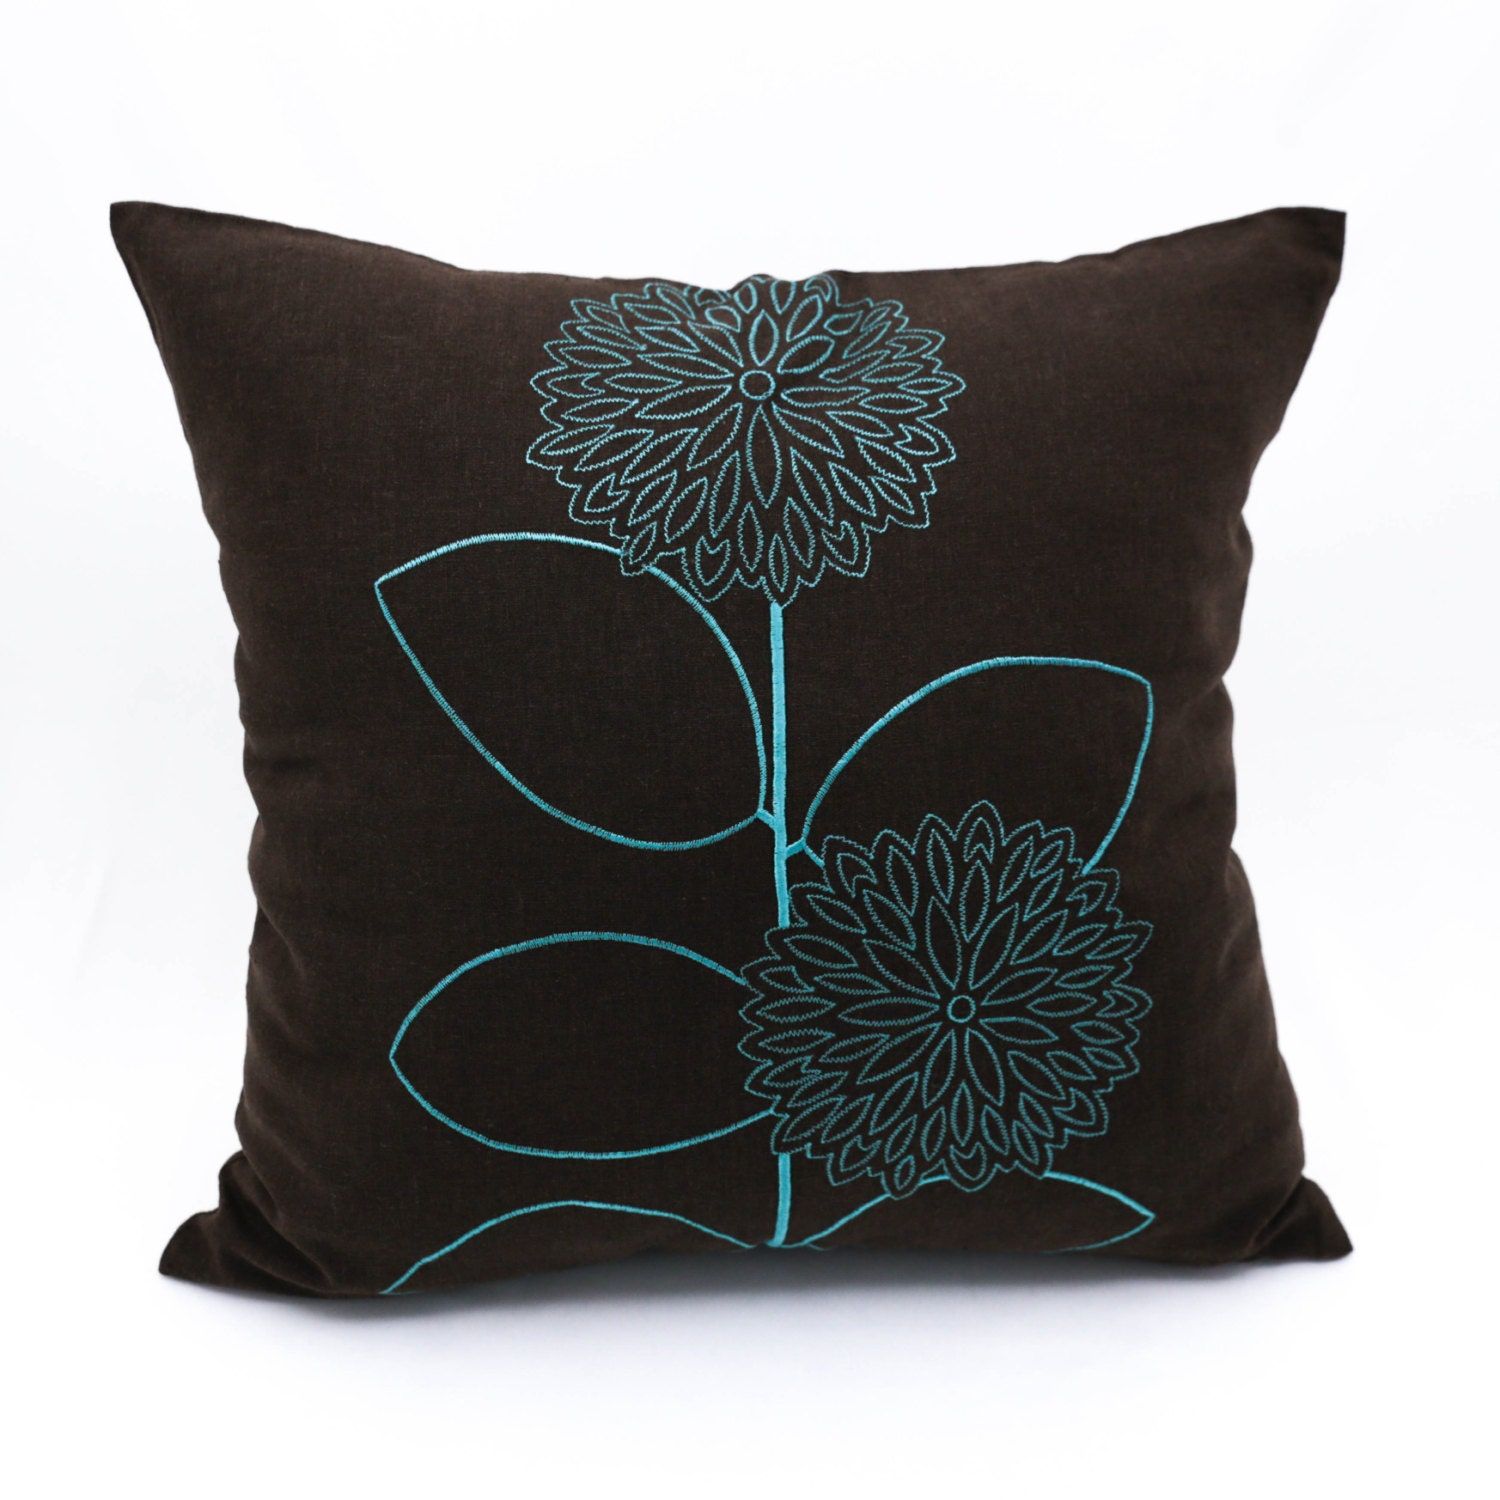 Teal Throw Pillow Cover Dark Brown Linen Pillow Floral